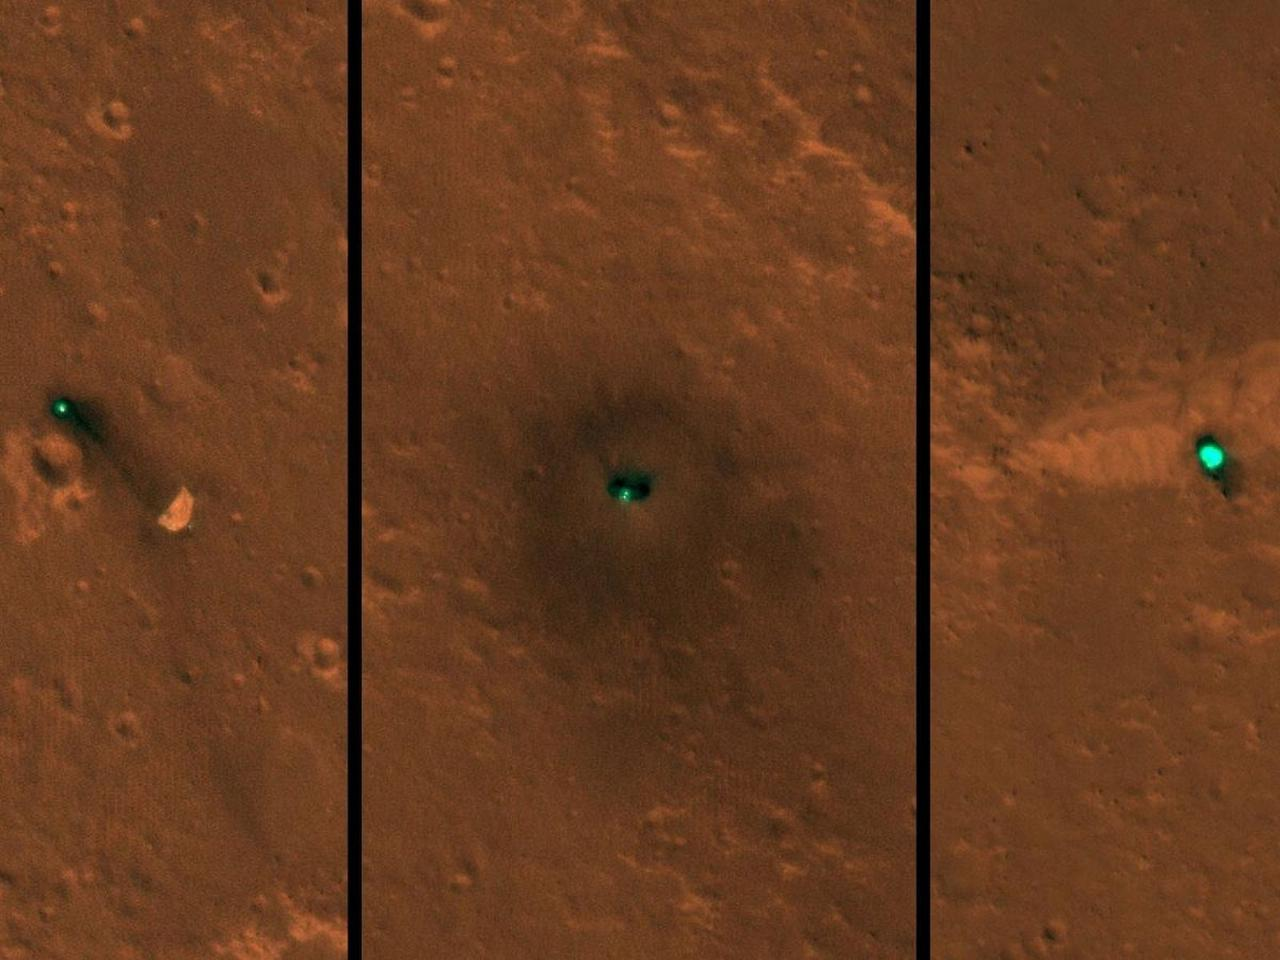 Composite image showing(from left to right)theInSight spacecraft's parachute, the lander itself and theheat shield on the surface of Mars